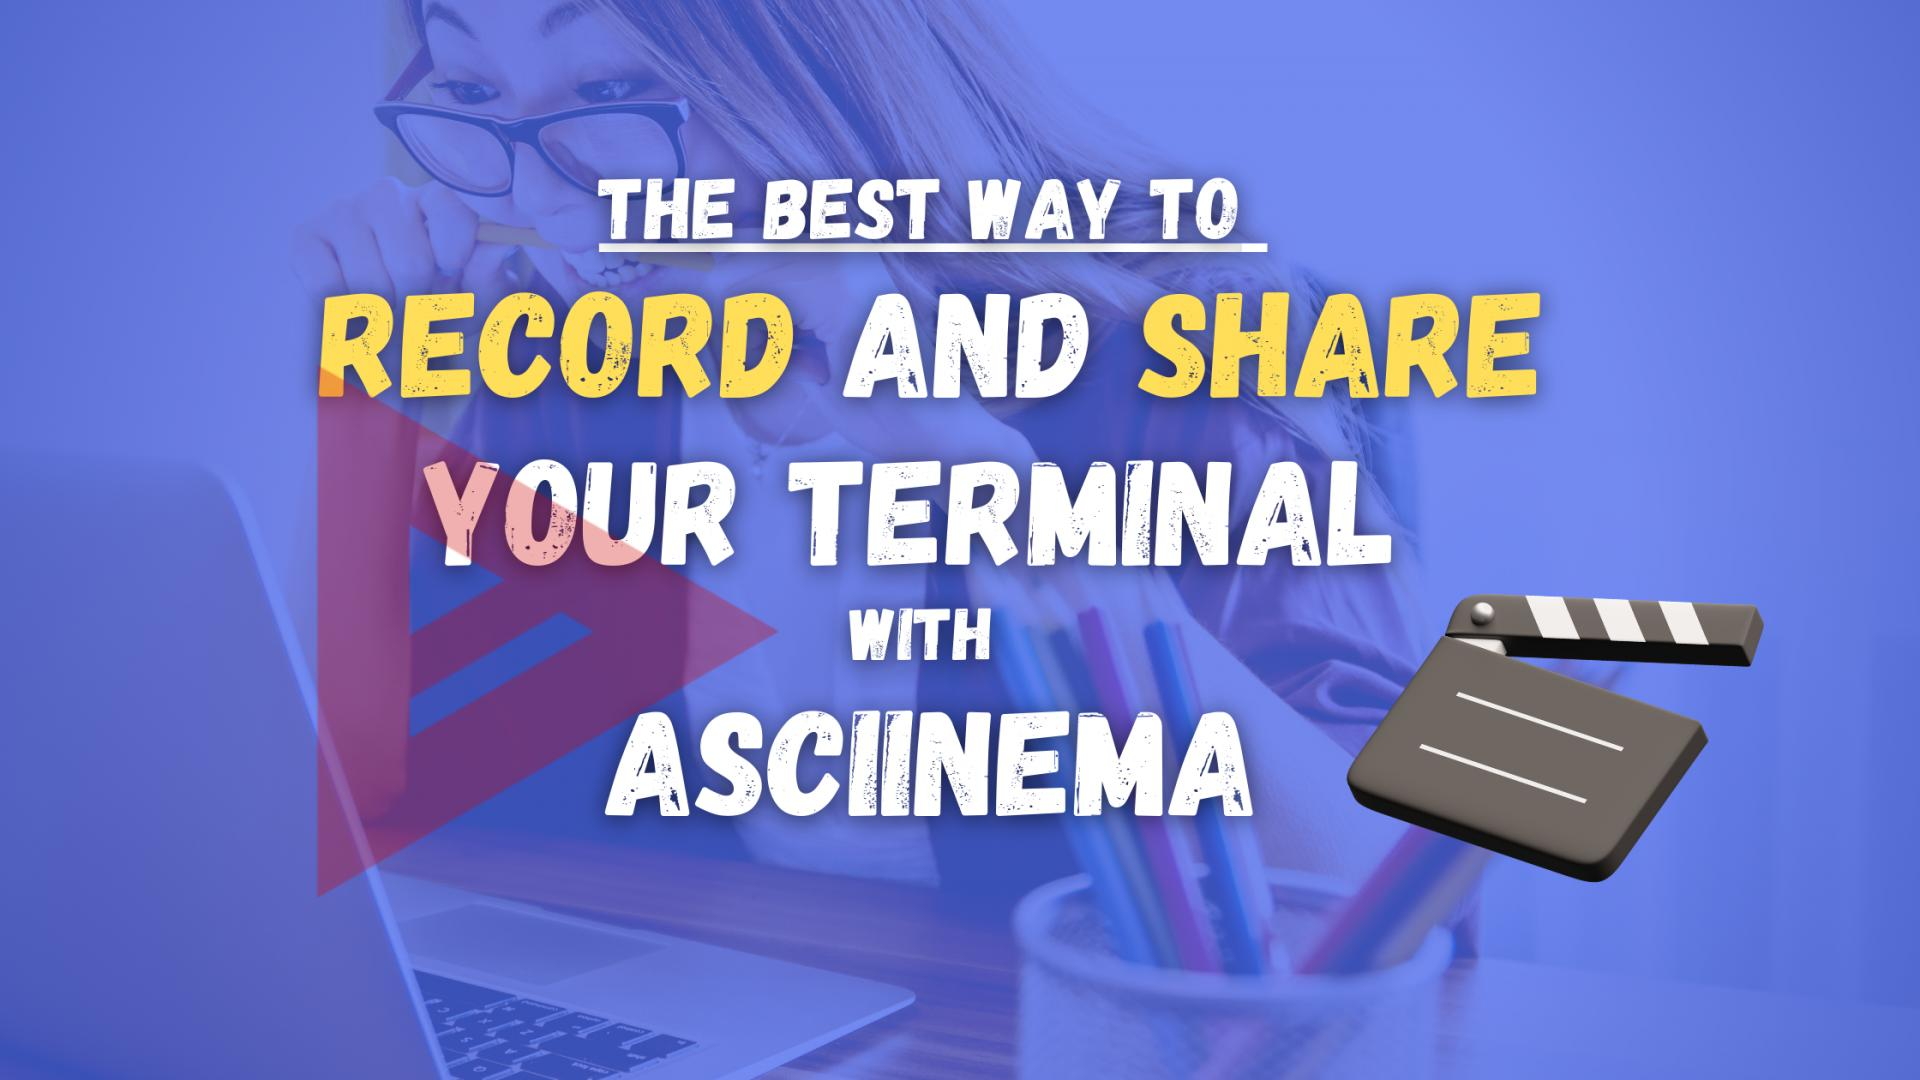 The best way of Recording and Sharing your Terminal with Asciinema